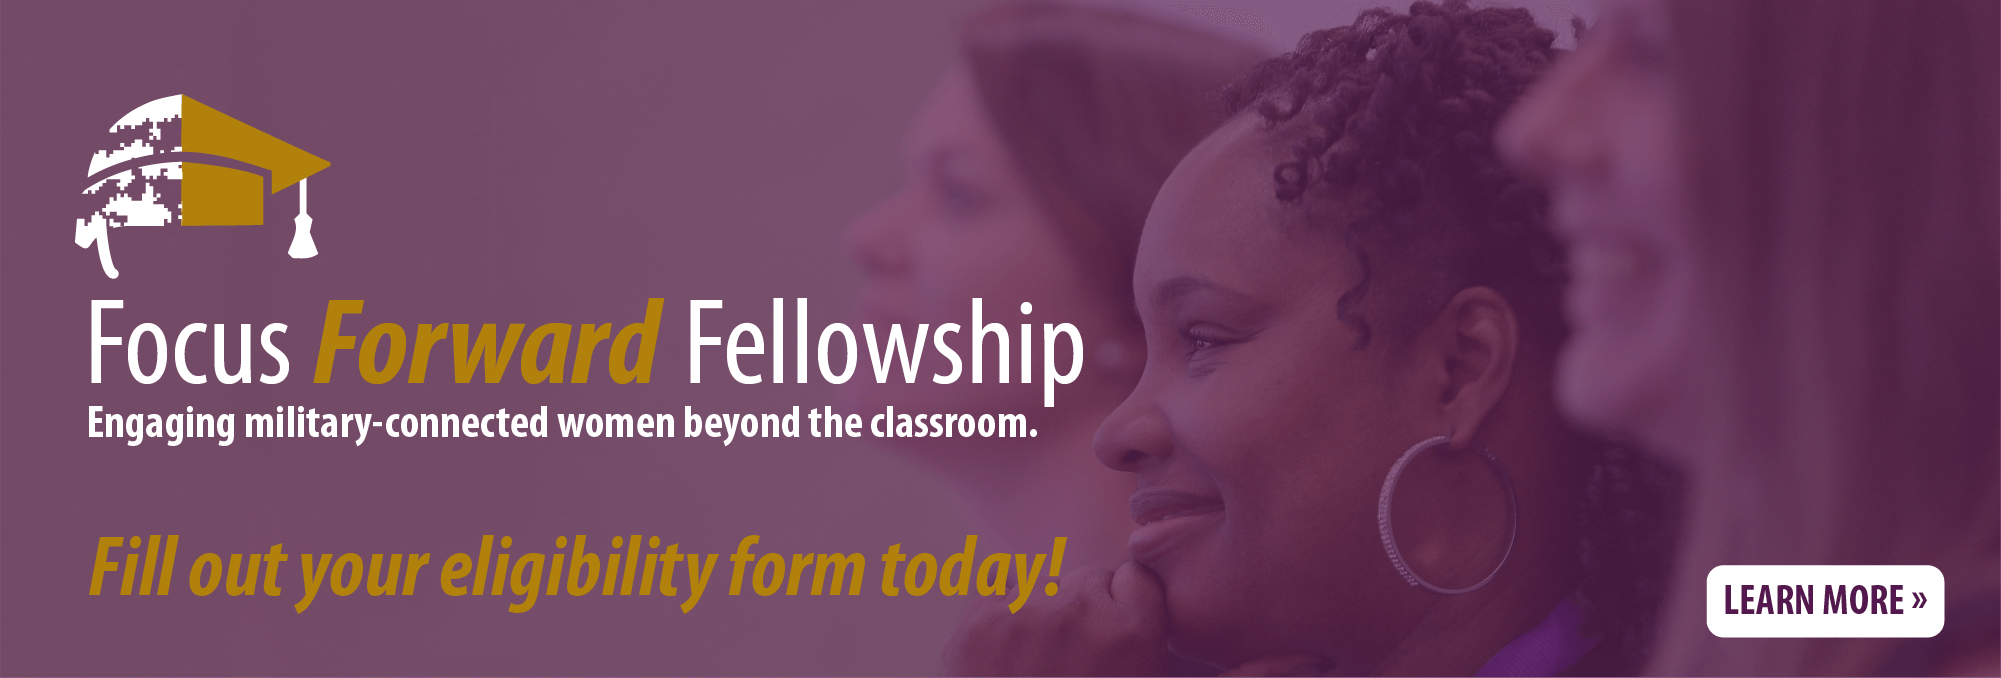 Focus Forward Fellowship Engaging military-connected women beyond the classroom. Registration opens in February.